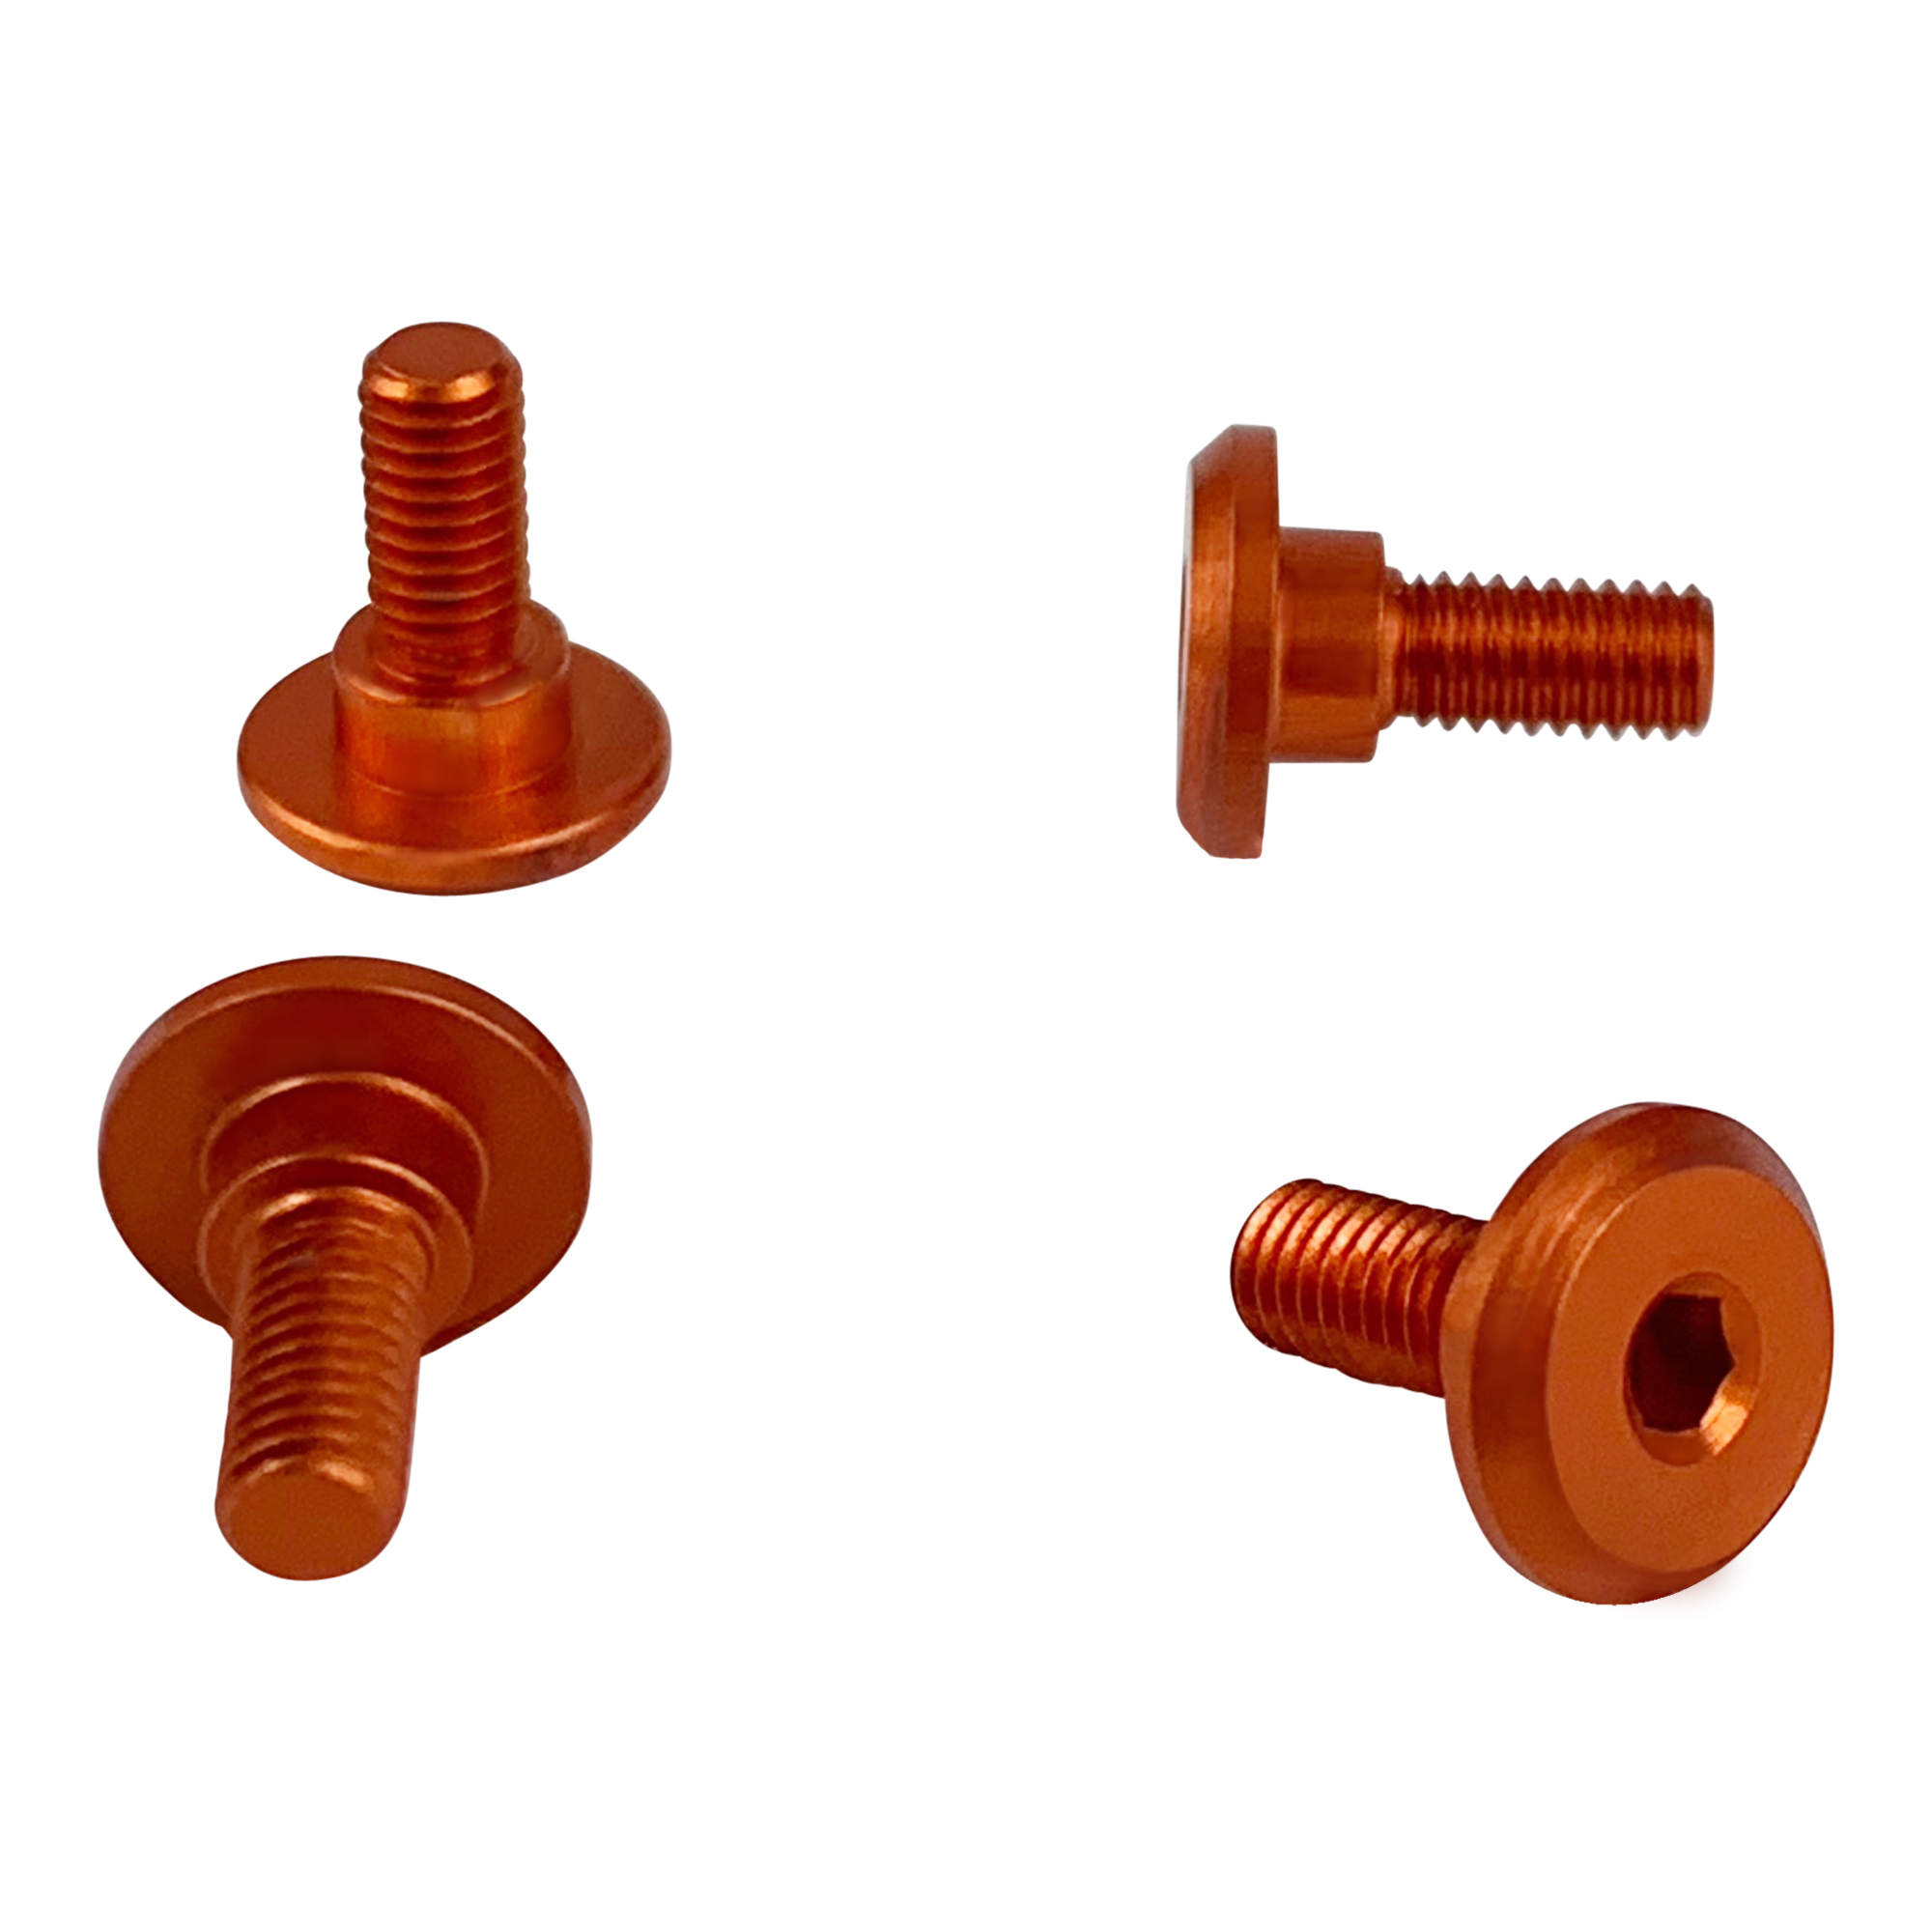 1UP Orange – 6mm Thread Servo Screws